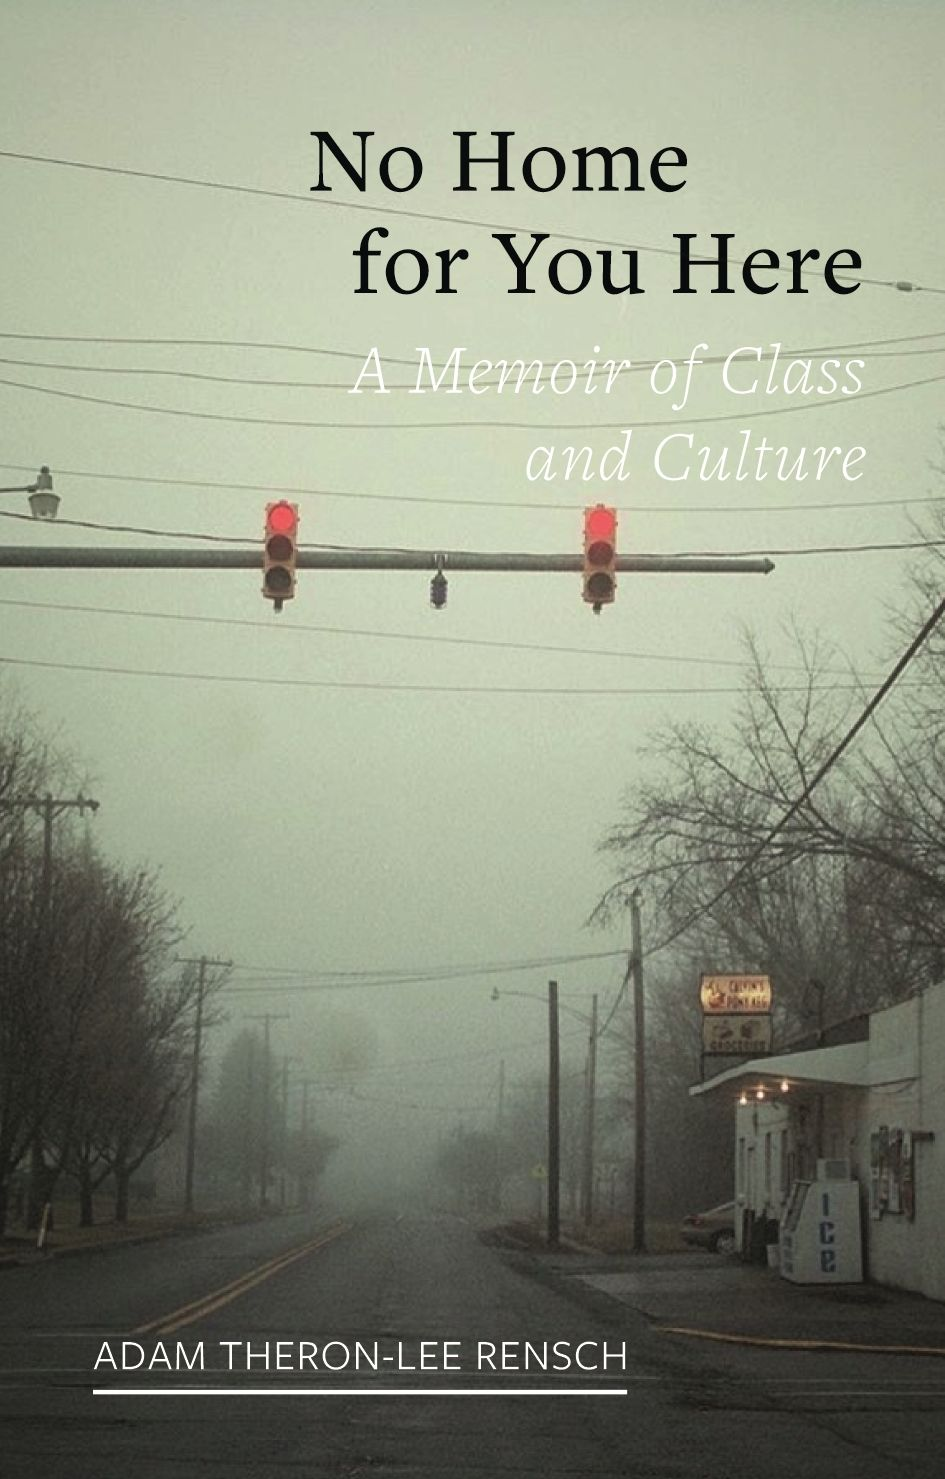 No Home for You Here: A Memoir of Class and Culture